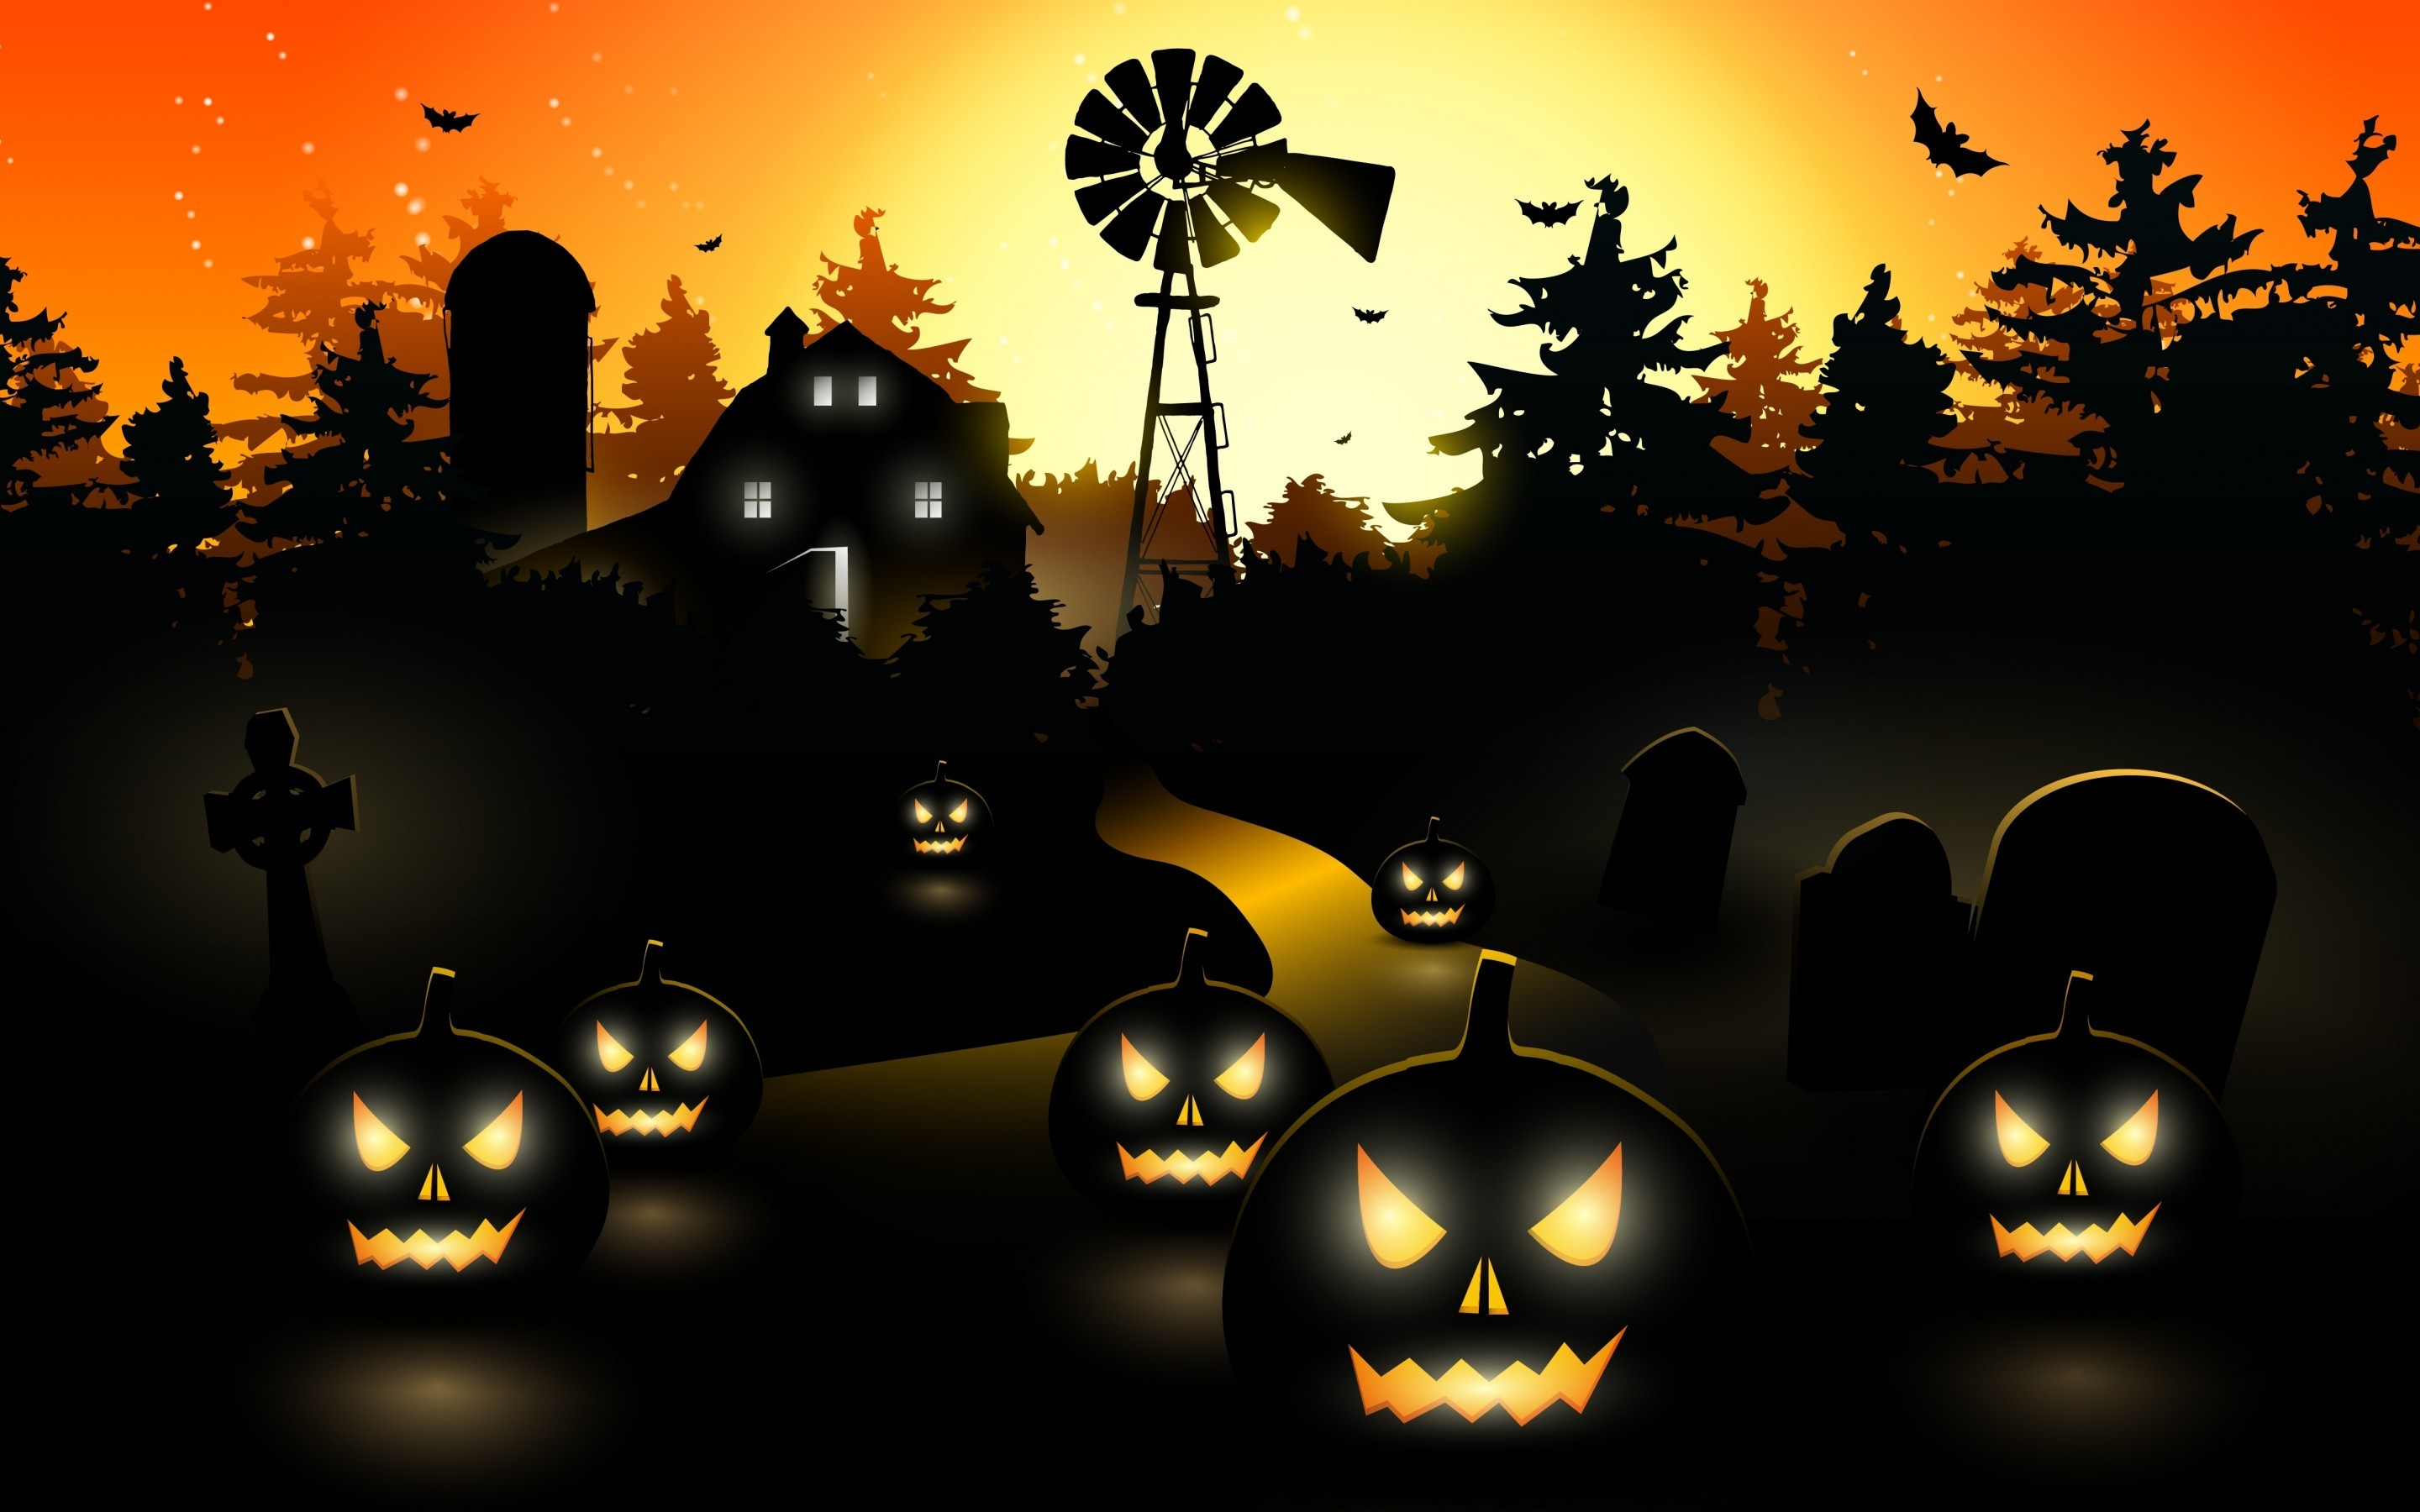 2880x1800 pictures download halloween wallpaper desktop wallpapers high definition  monitor download free amazing background photos artwork 2880×1800 Wallpaper  HD